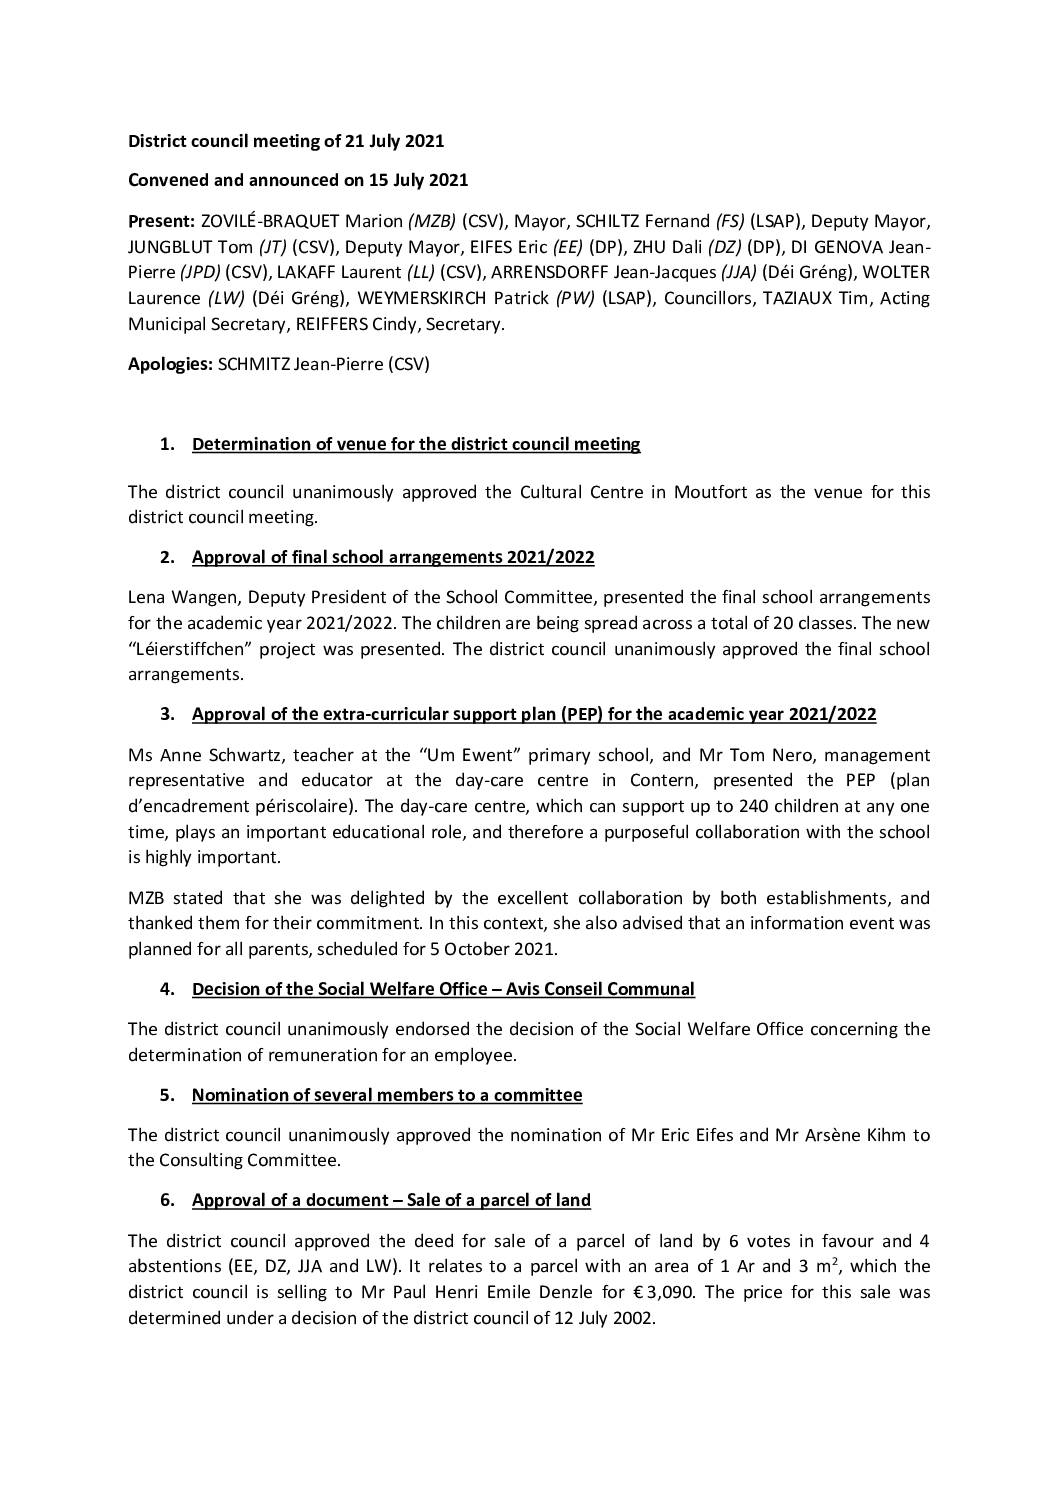 2021 07 21 Rapport of the District council meeting